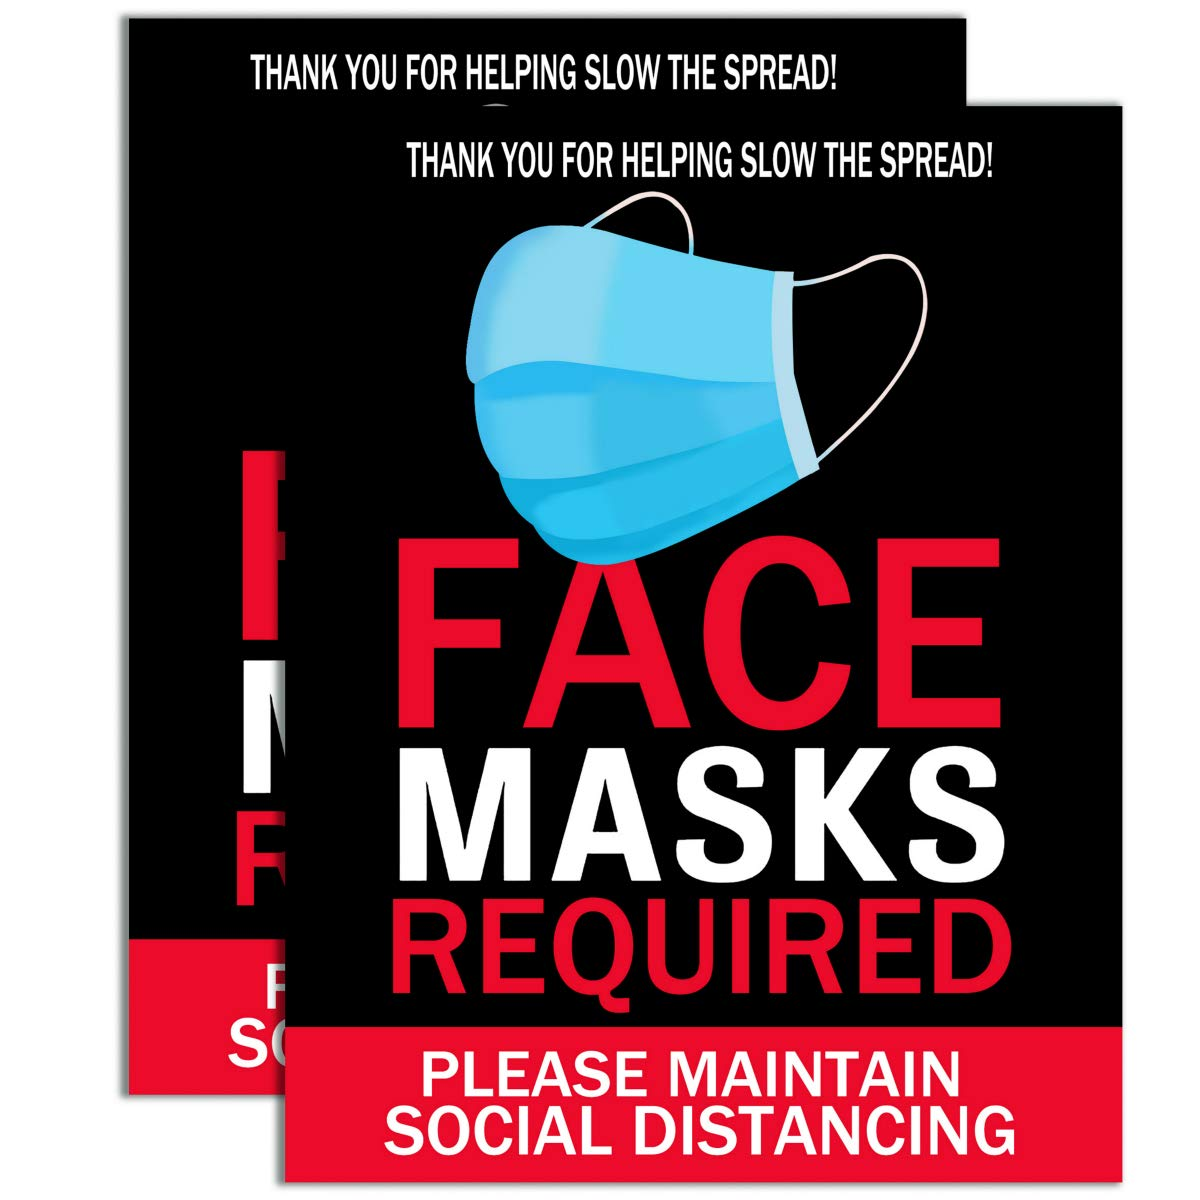 Face Mask Required Sign Max 72% OFF - 2 Pack MasksReq Free Shipping New 14